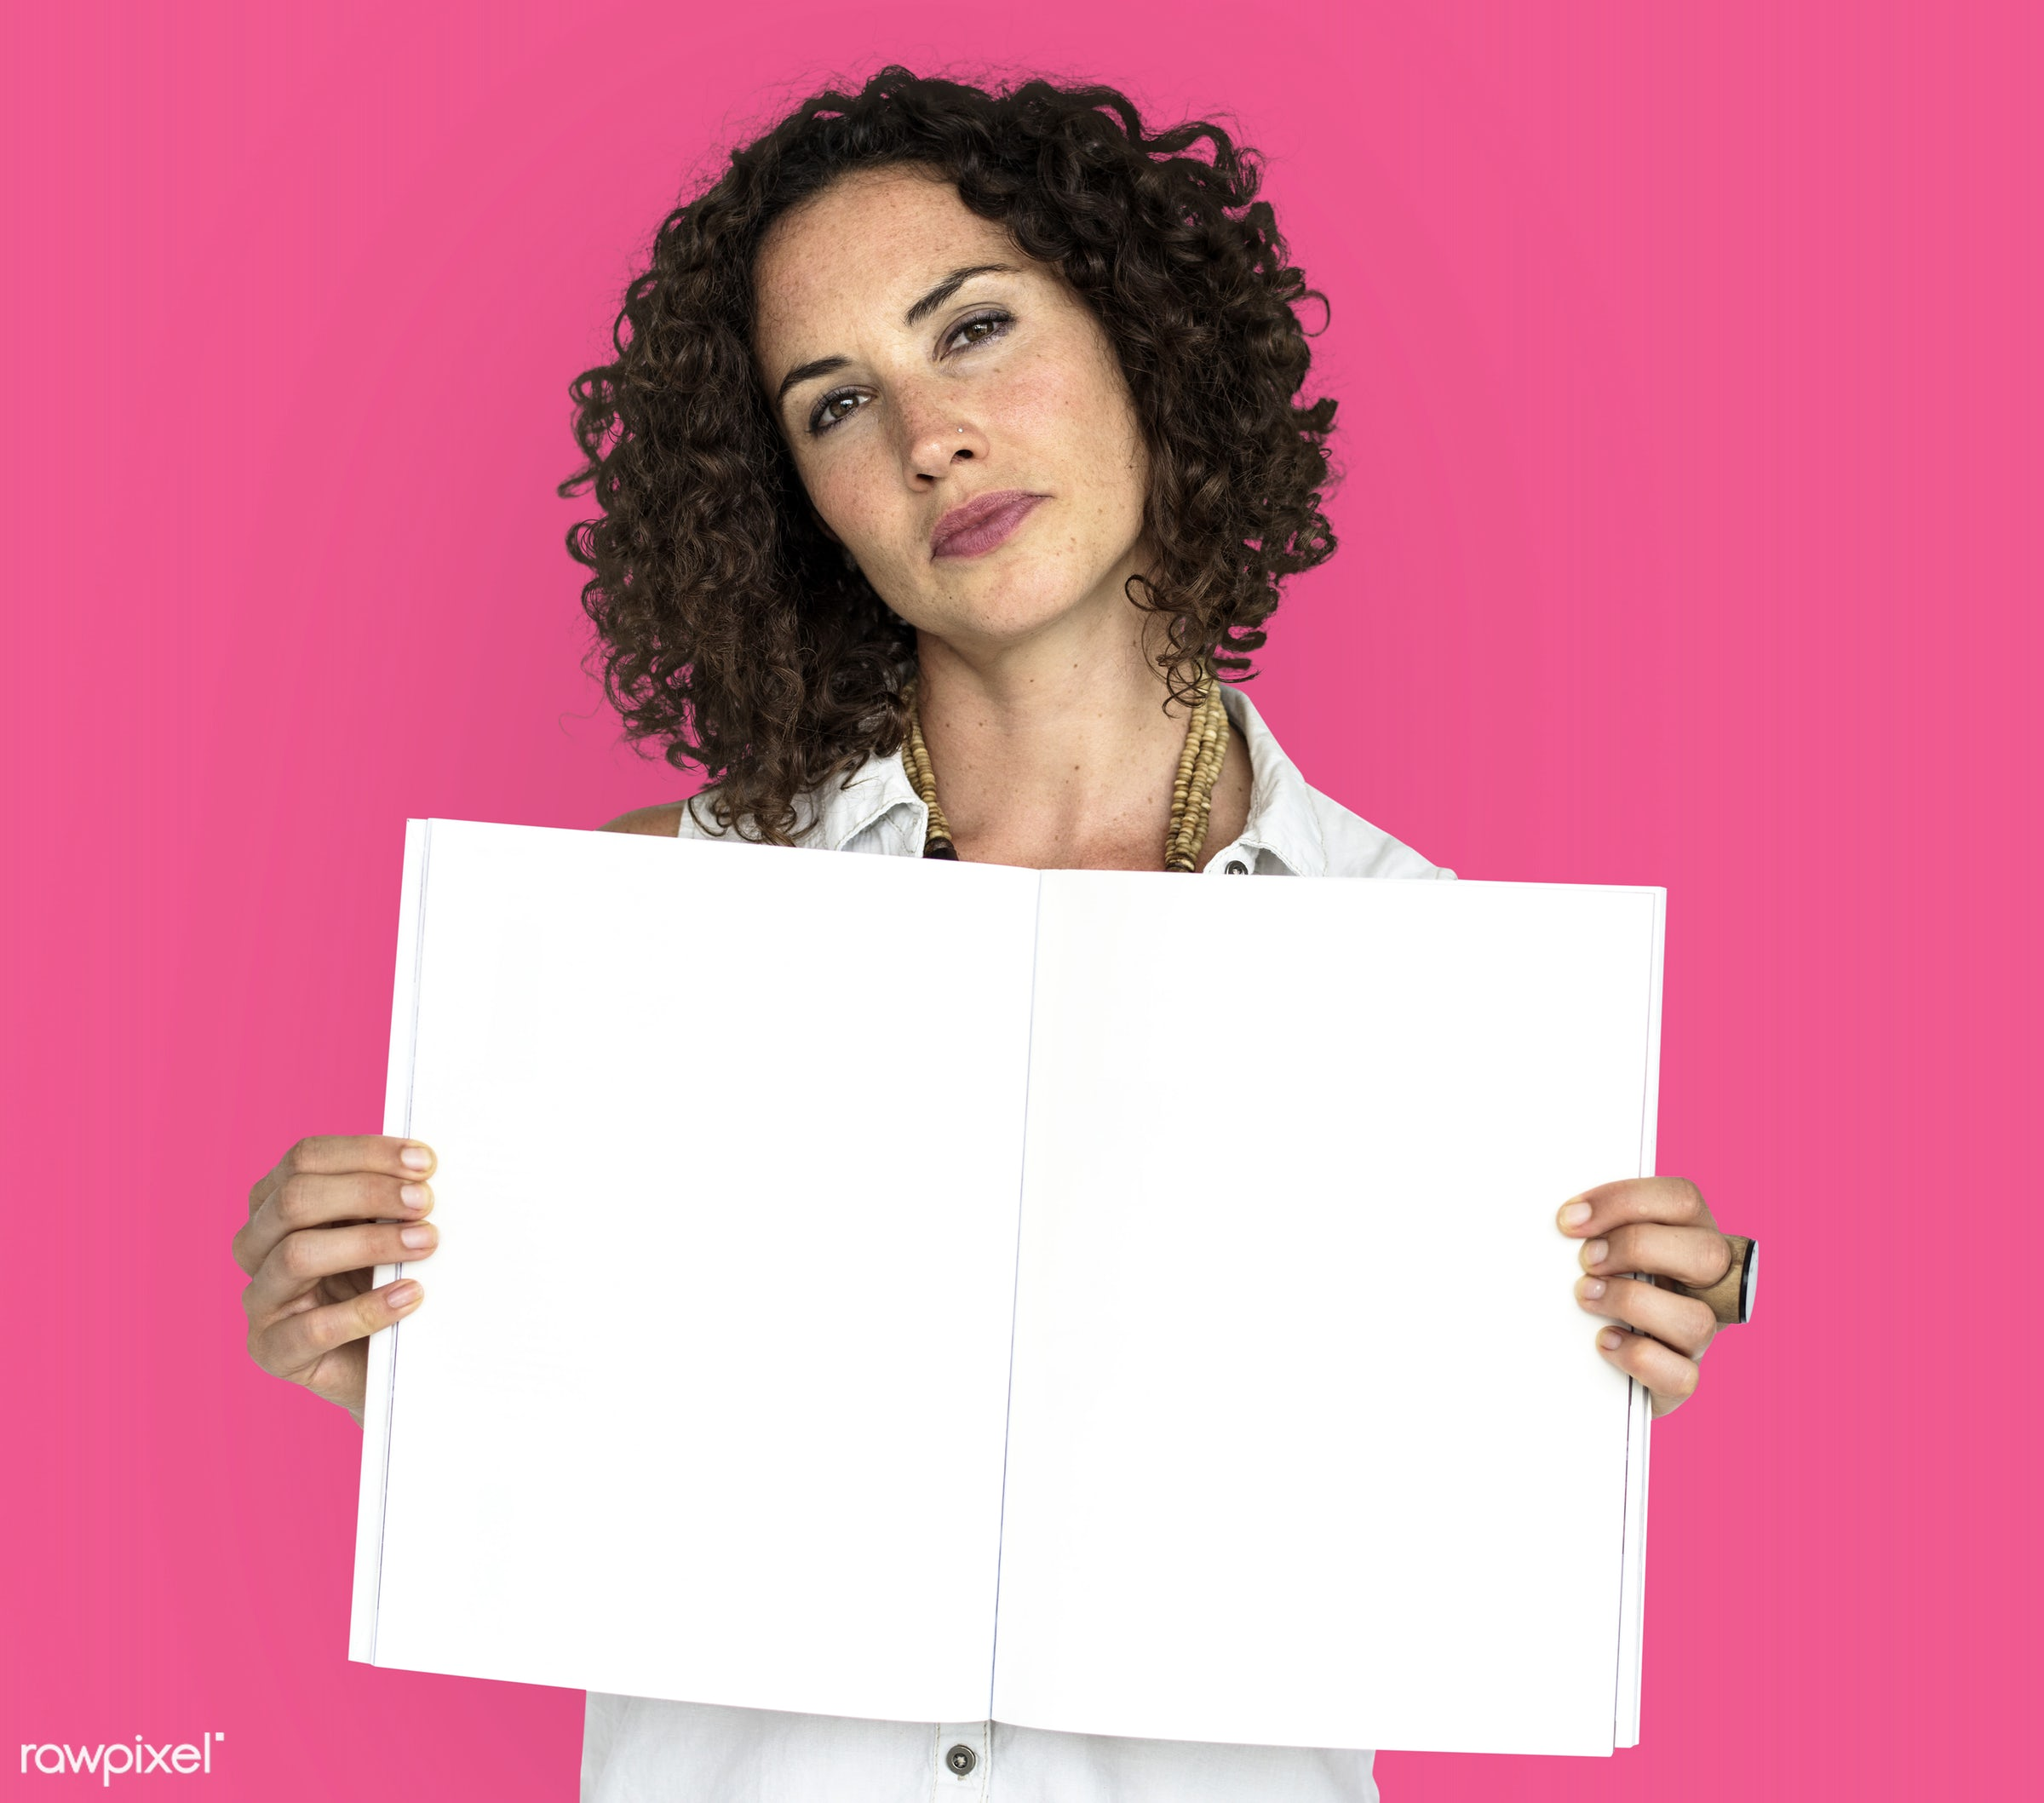 expression, studio, person, open notebook, object, people, positivity, caucasian, girl, solo, woman, showing, pink, smile,...